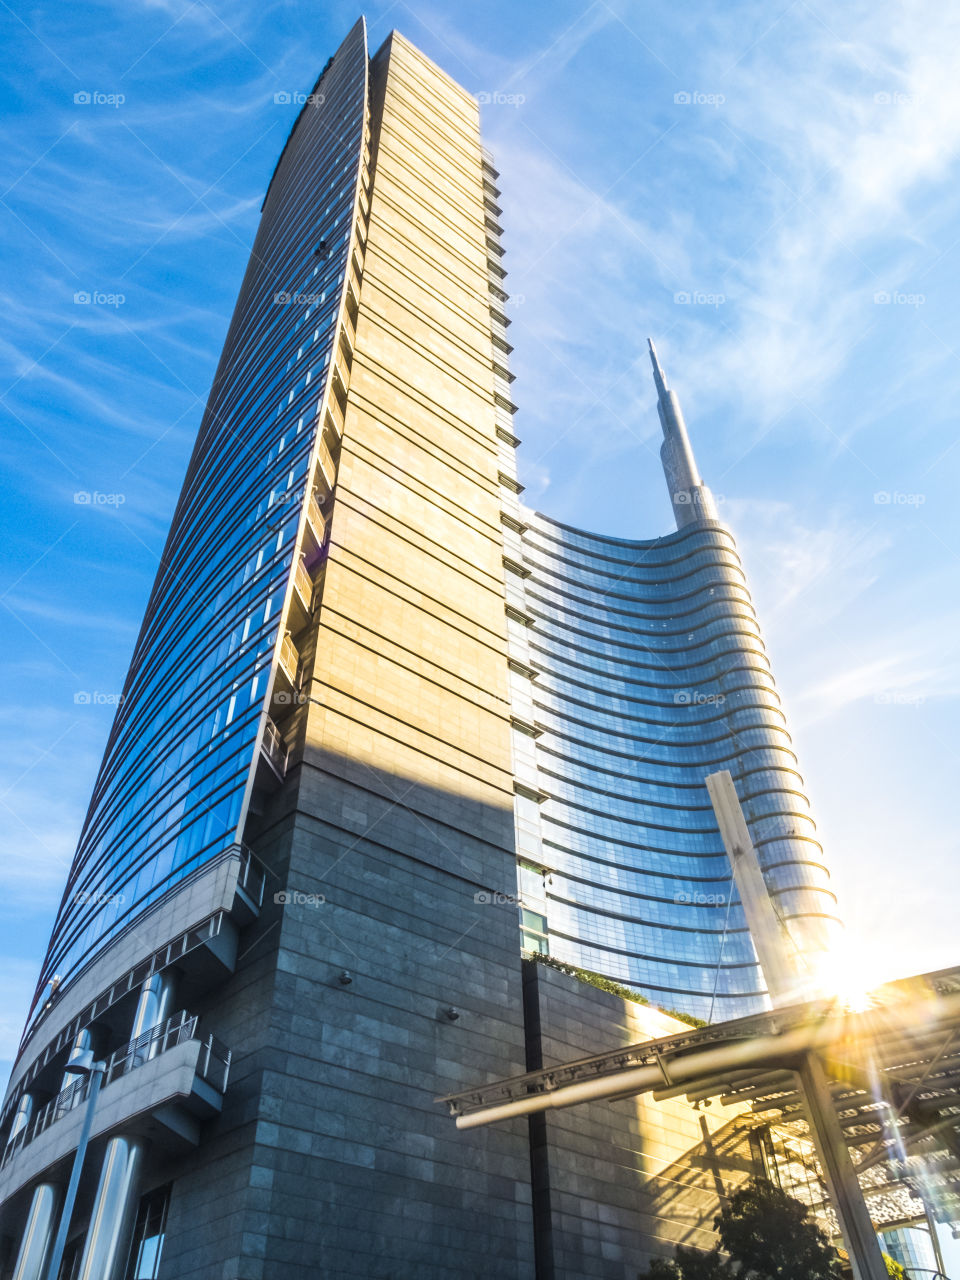 The UniCredit Tower (Torre UniCredit) is a skyscraper in Milan, Italy. At 231 metres (758 ft), it is the tallest building in Italy.